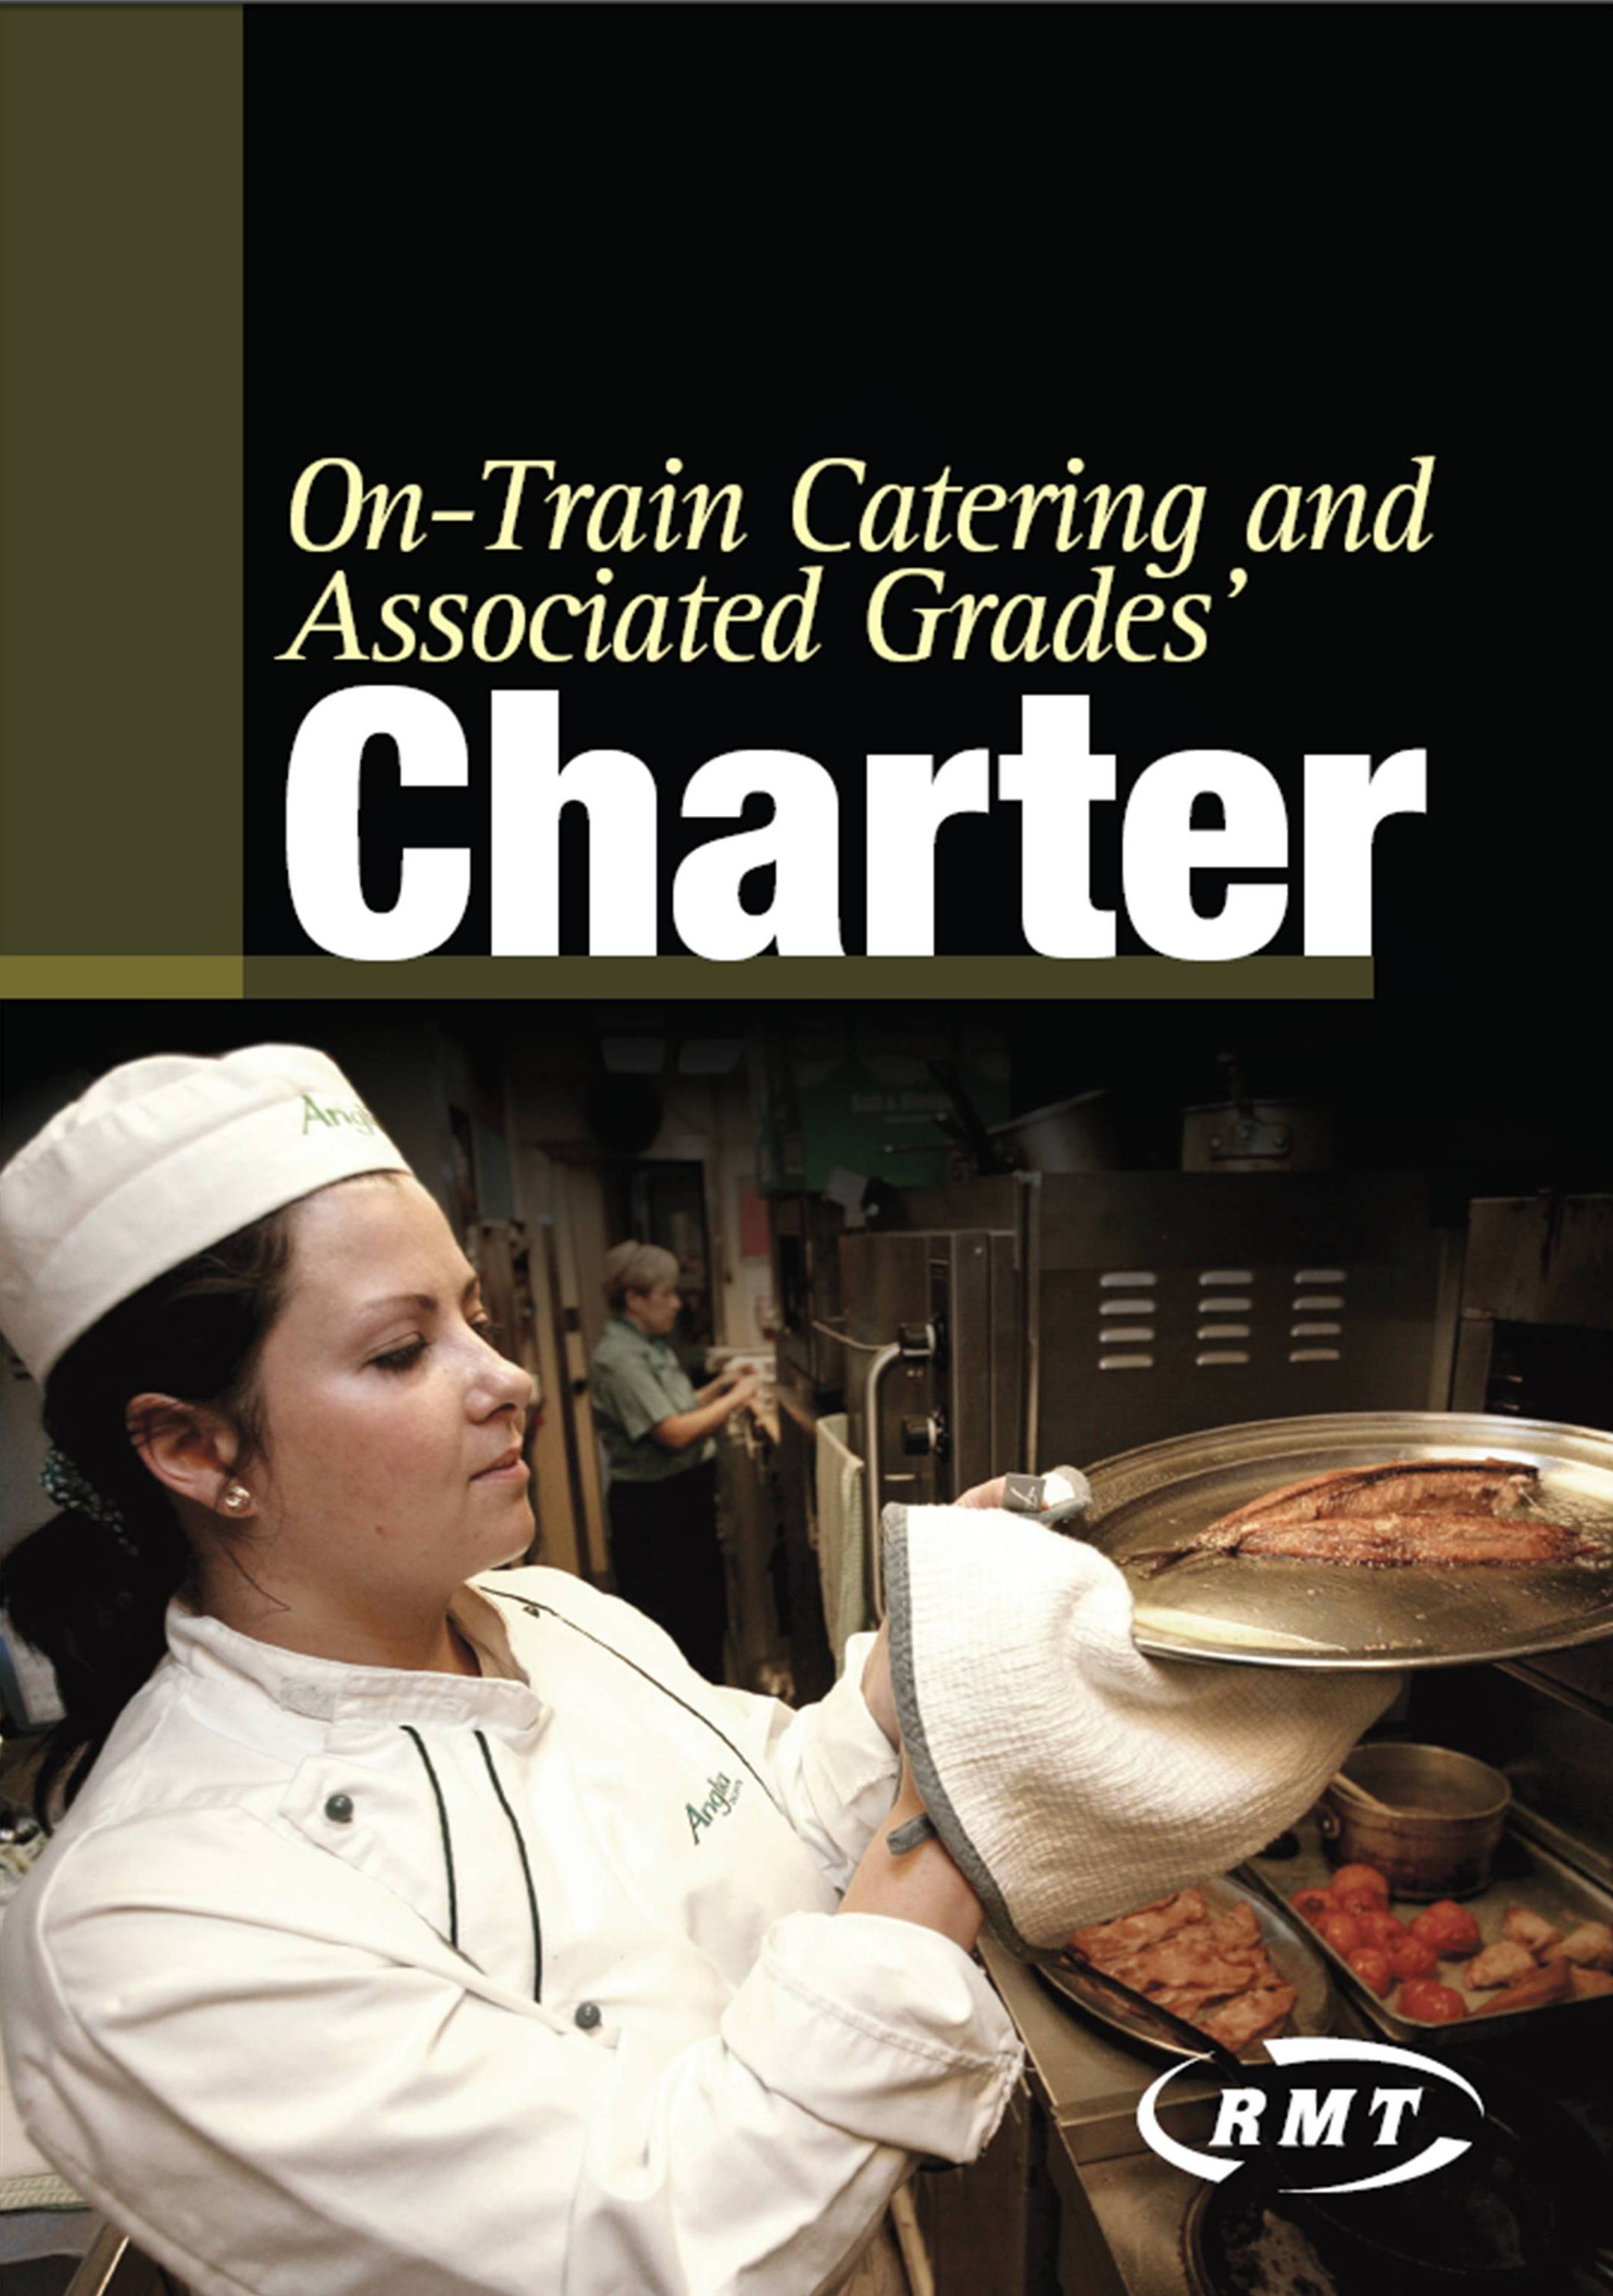 catering charter